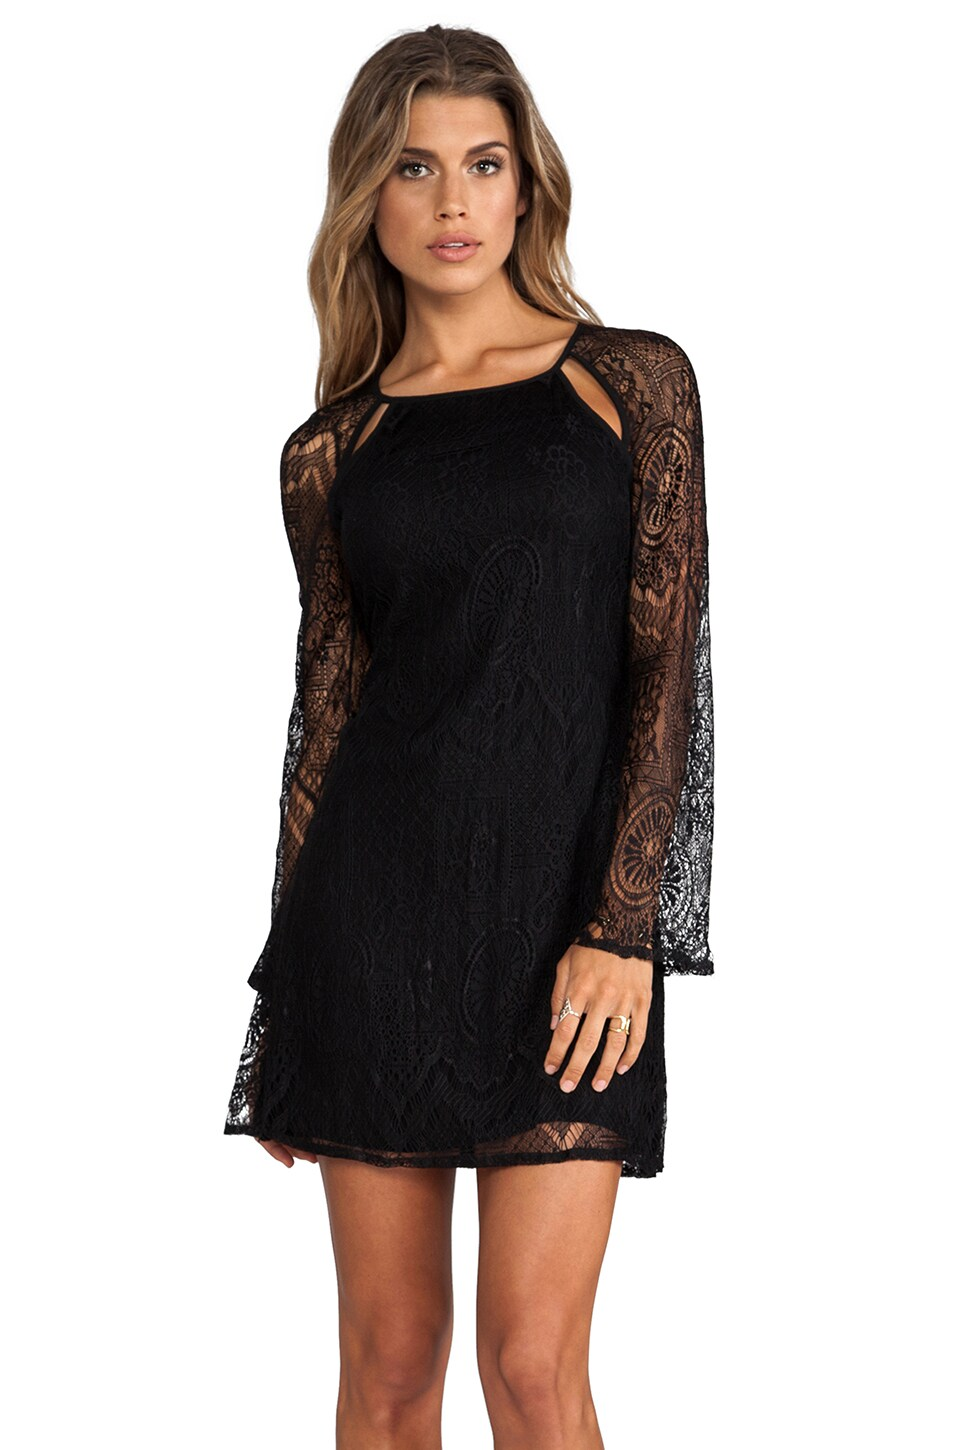 Lucca Couture Dress with Lace Sleeves in Black